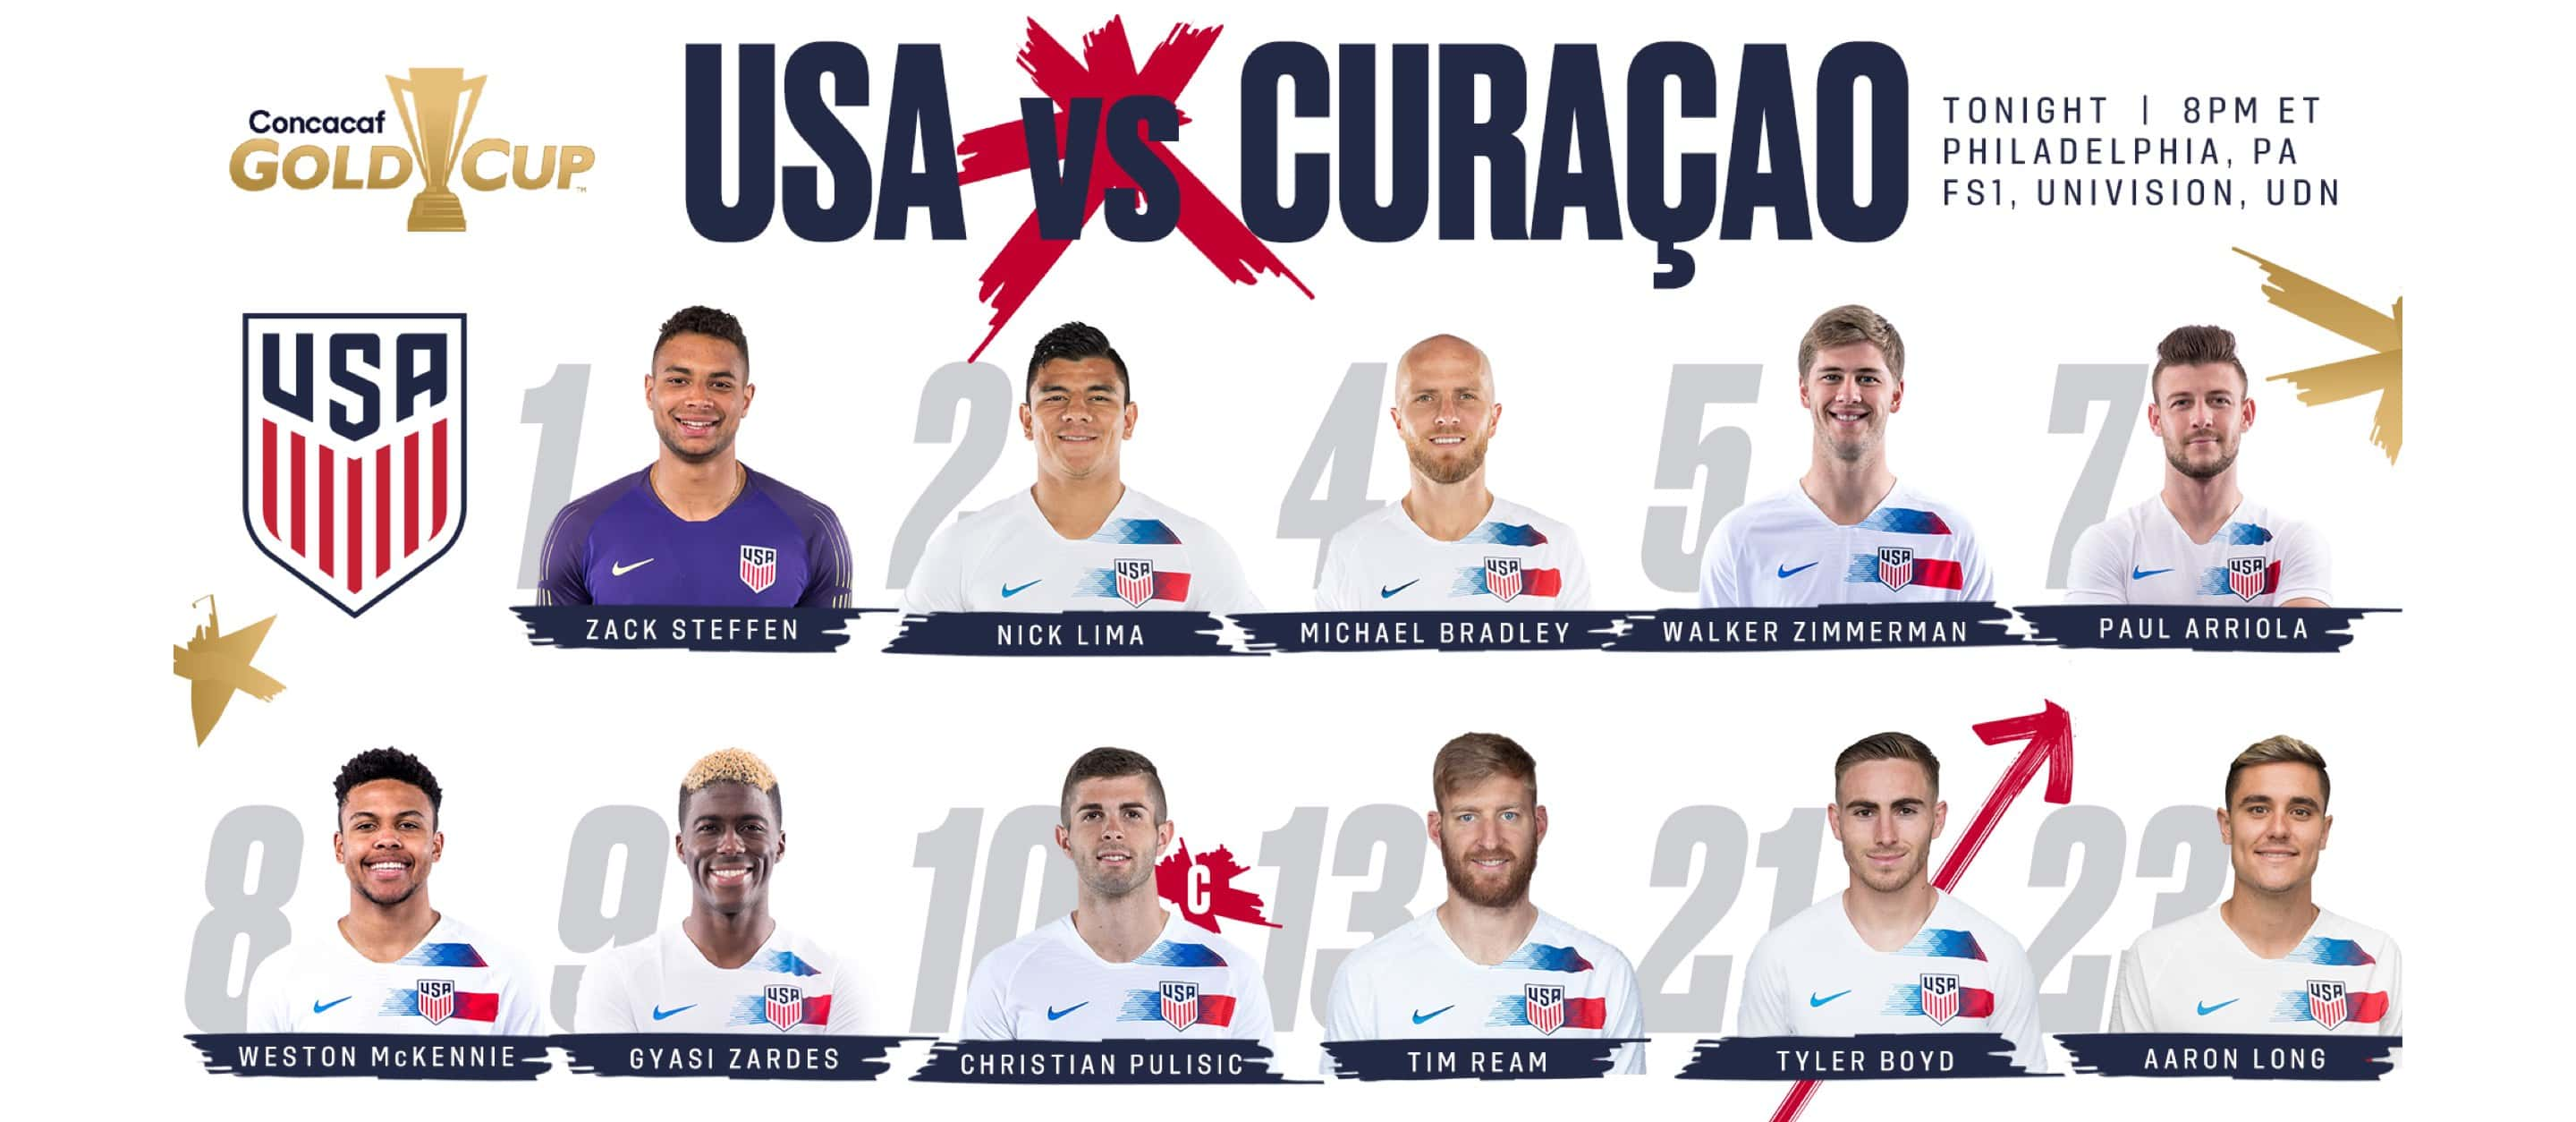 Gold Cup 2019: USA vs  Curaçao - Lineup, Schedule, TV Channels